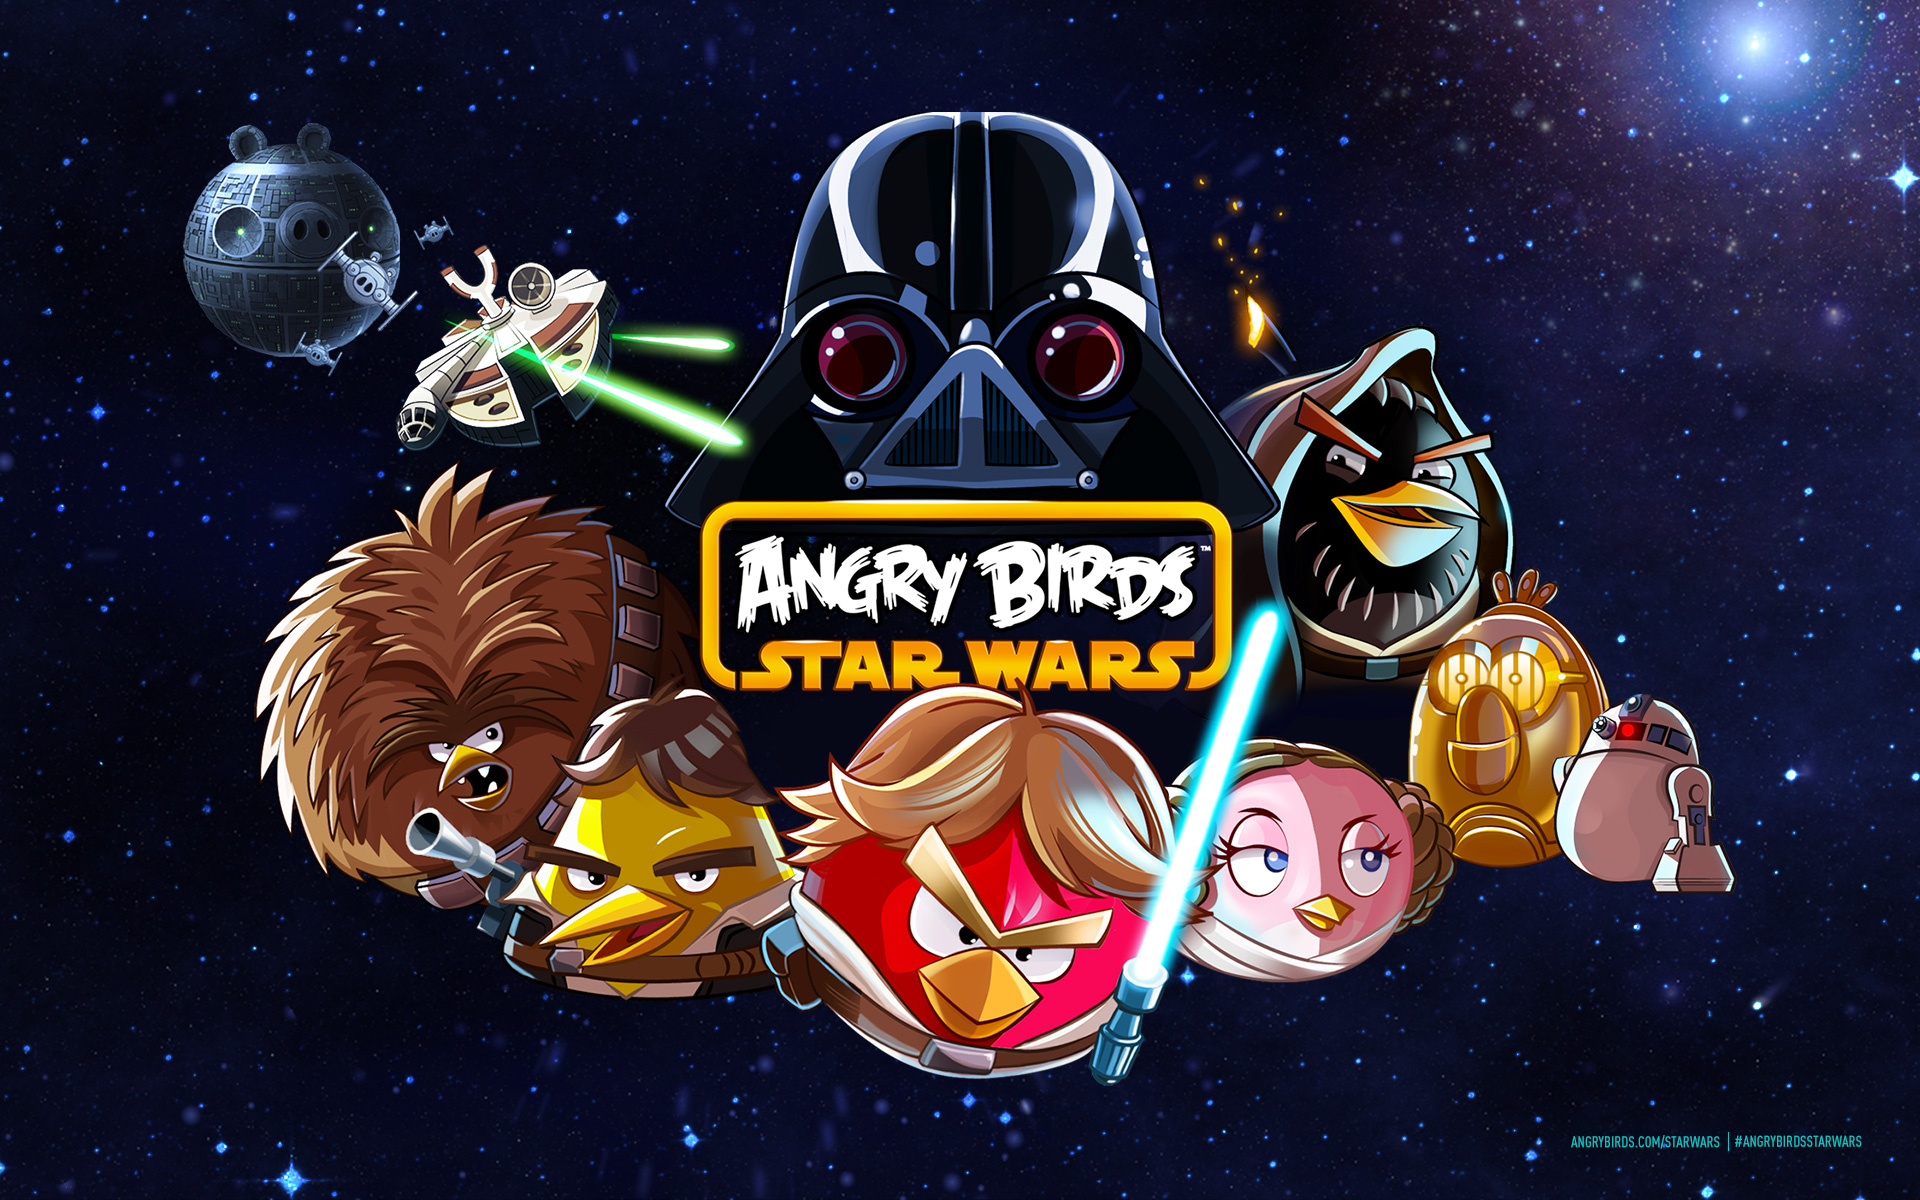 Angry Birds Star Wars 1.5.13 for Android - Download